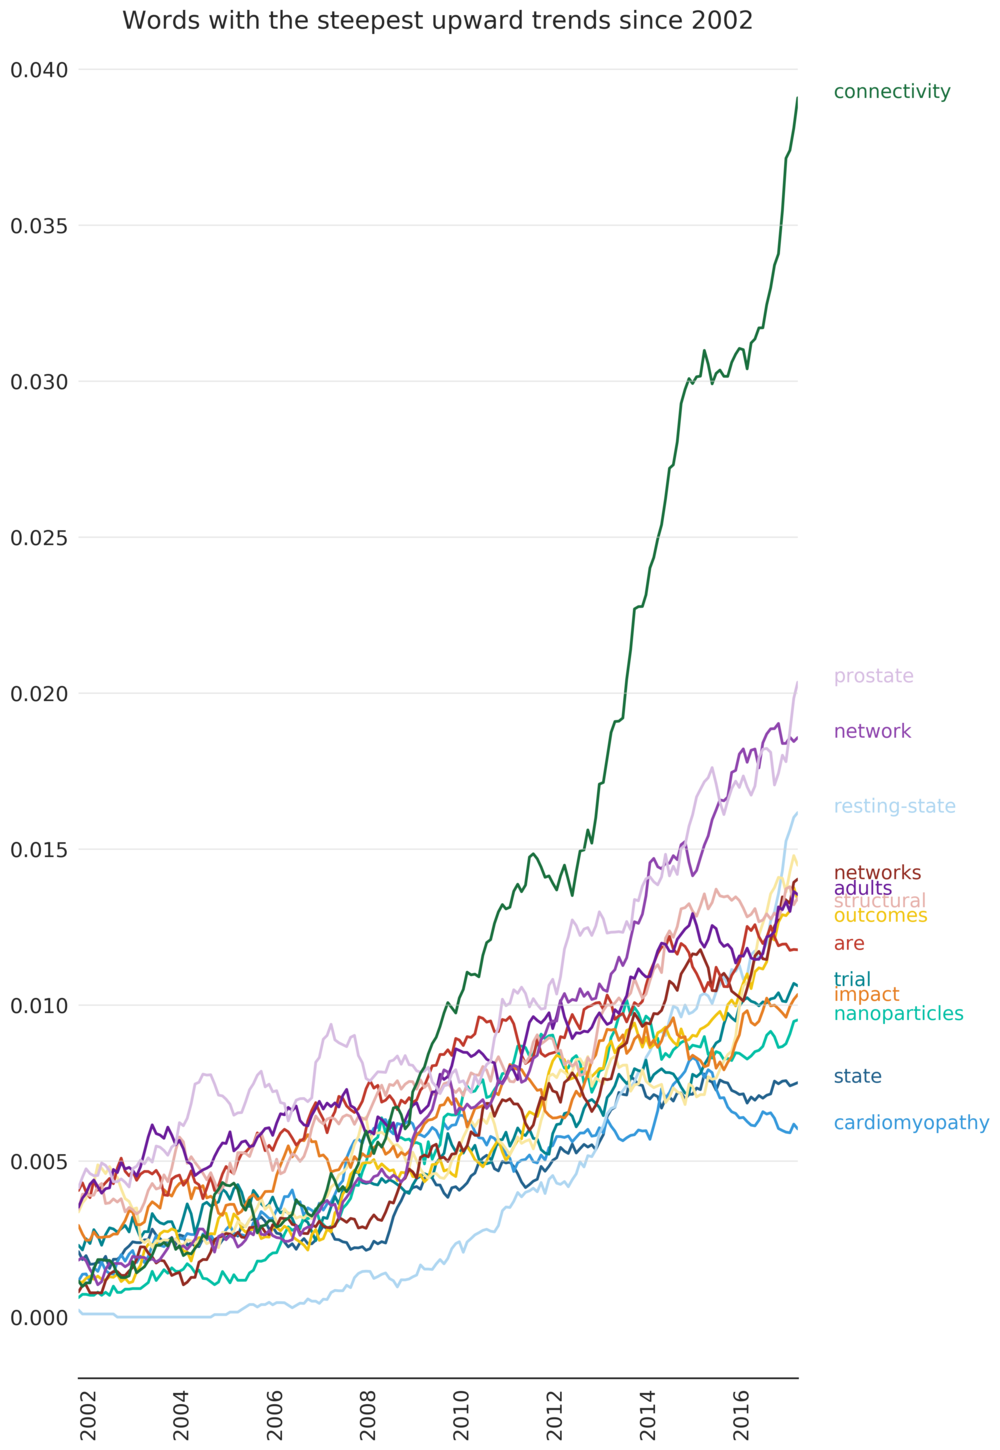 trending_words_since_2002.png